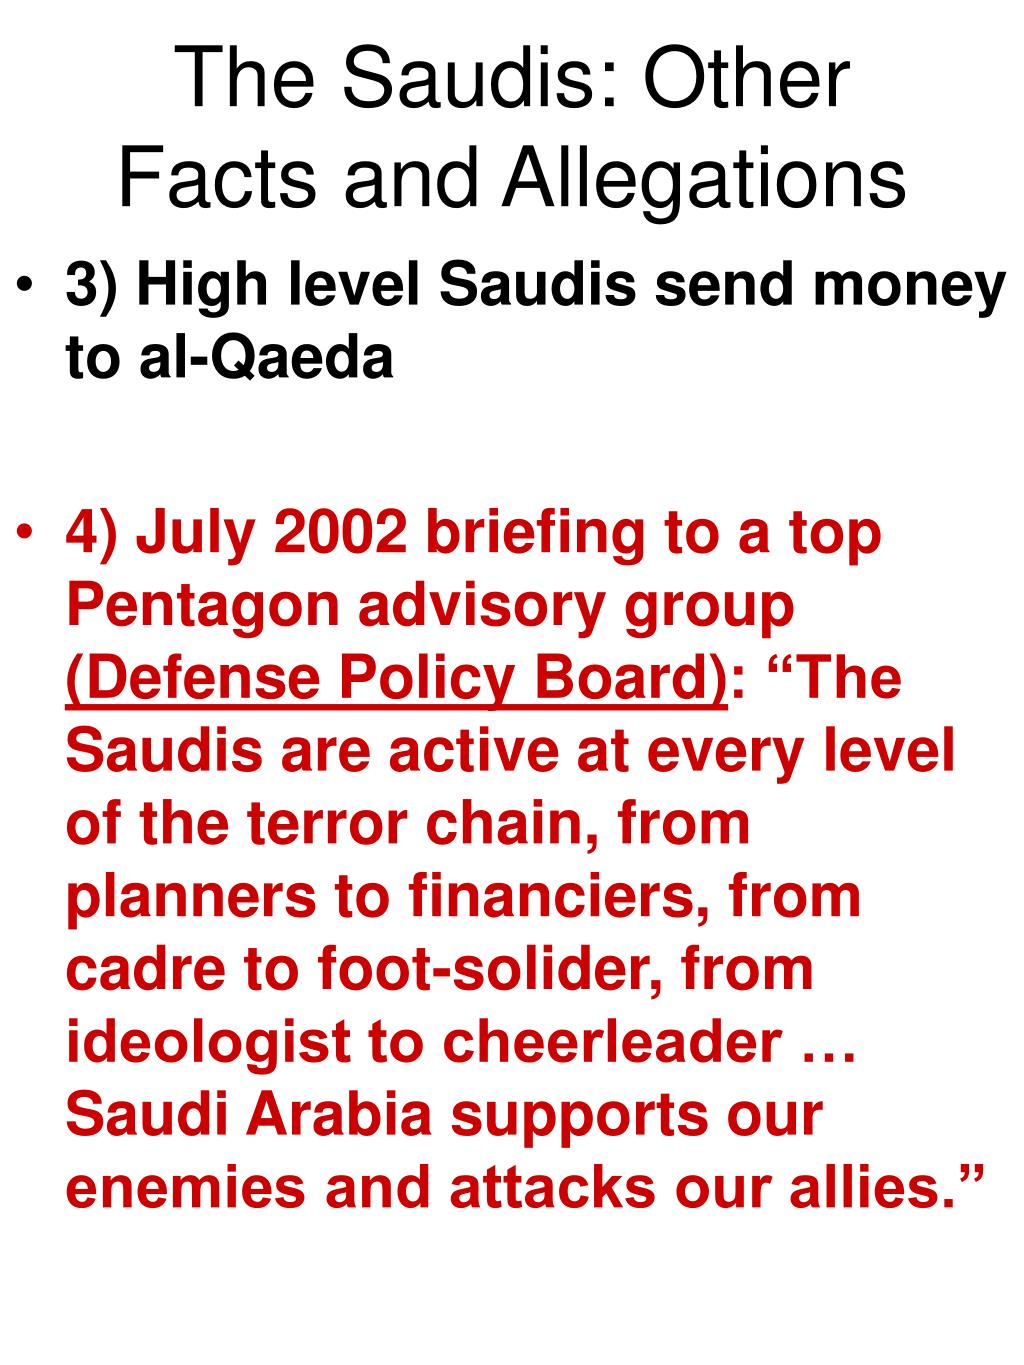 The Saudis: Other Facts and Allegations